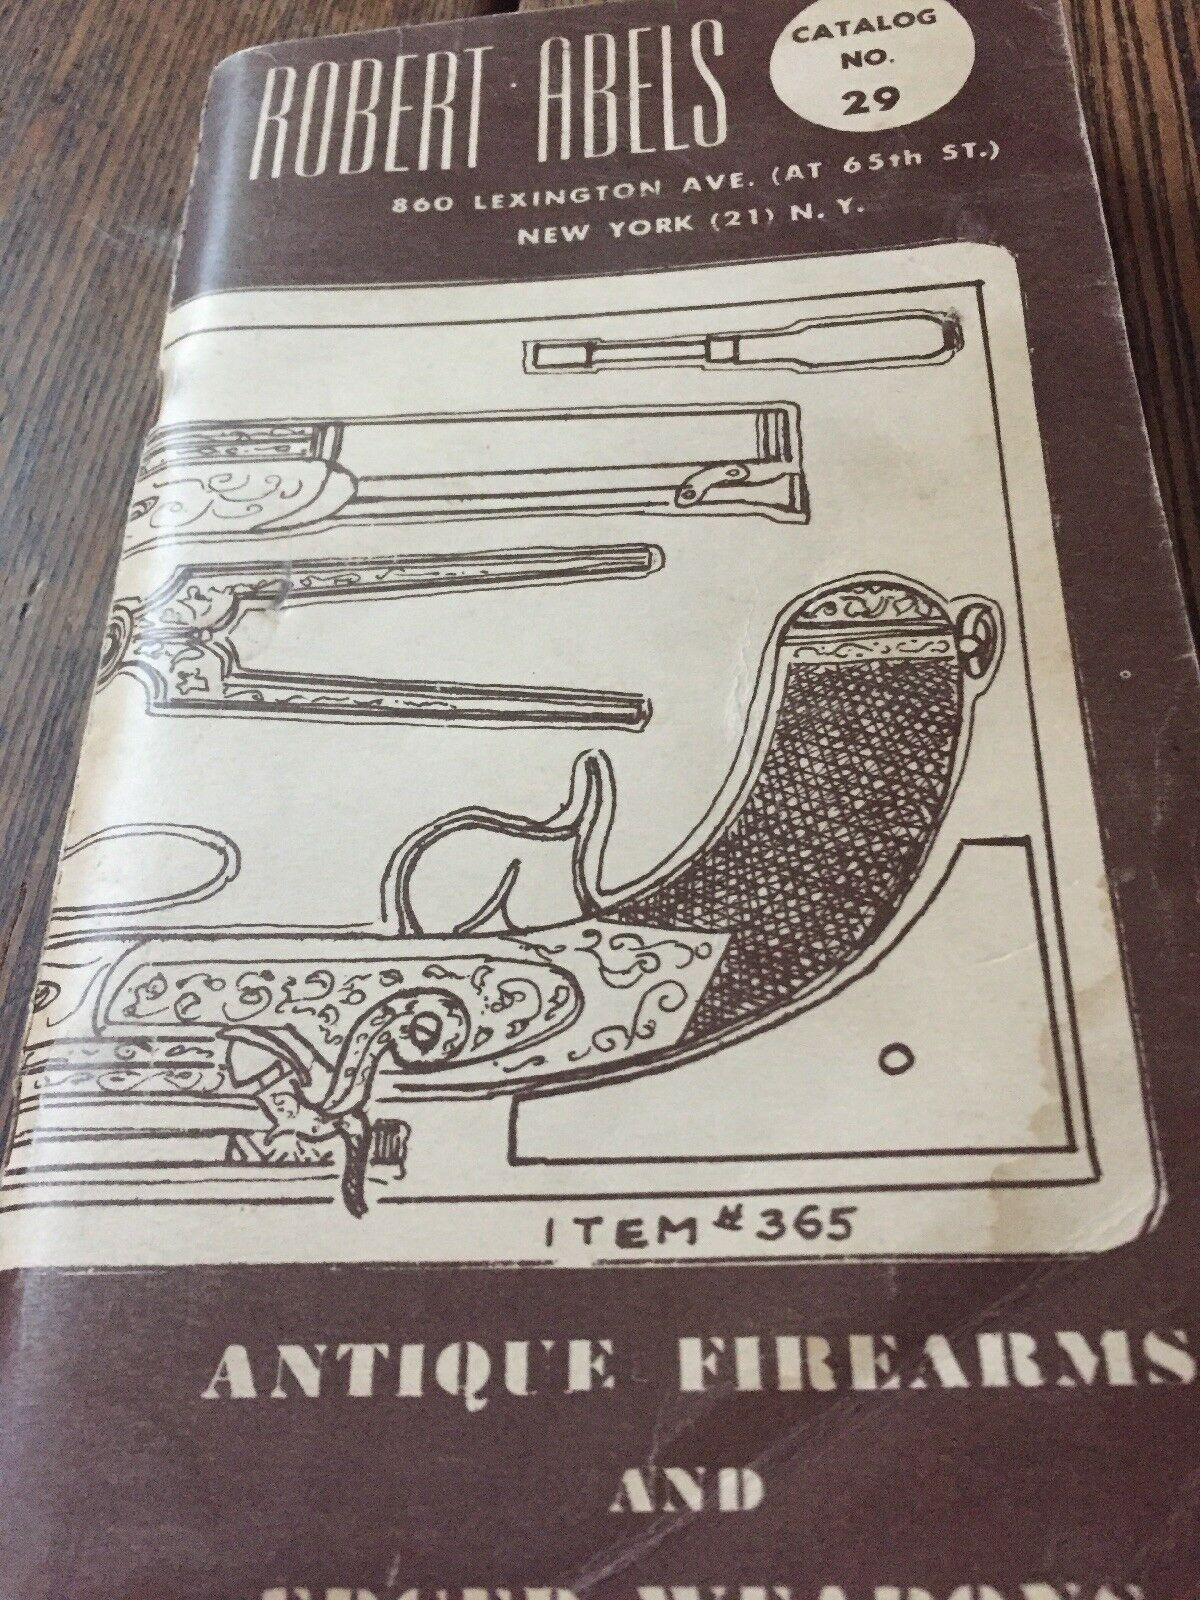 Antique Firearms And Edges Weapons. Robert Abels Catalog No. 29